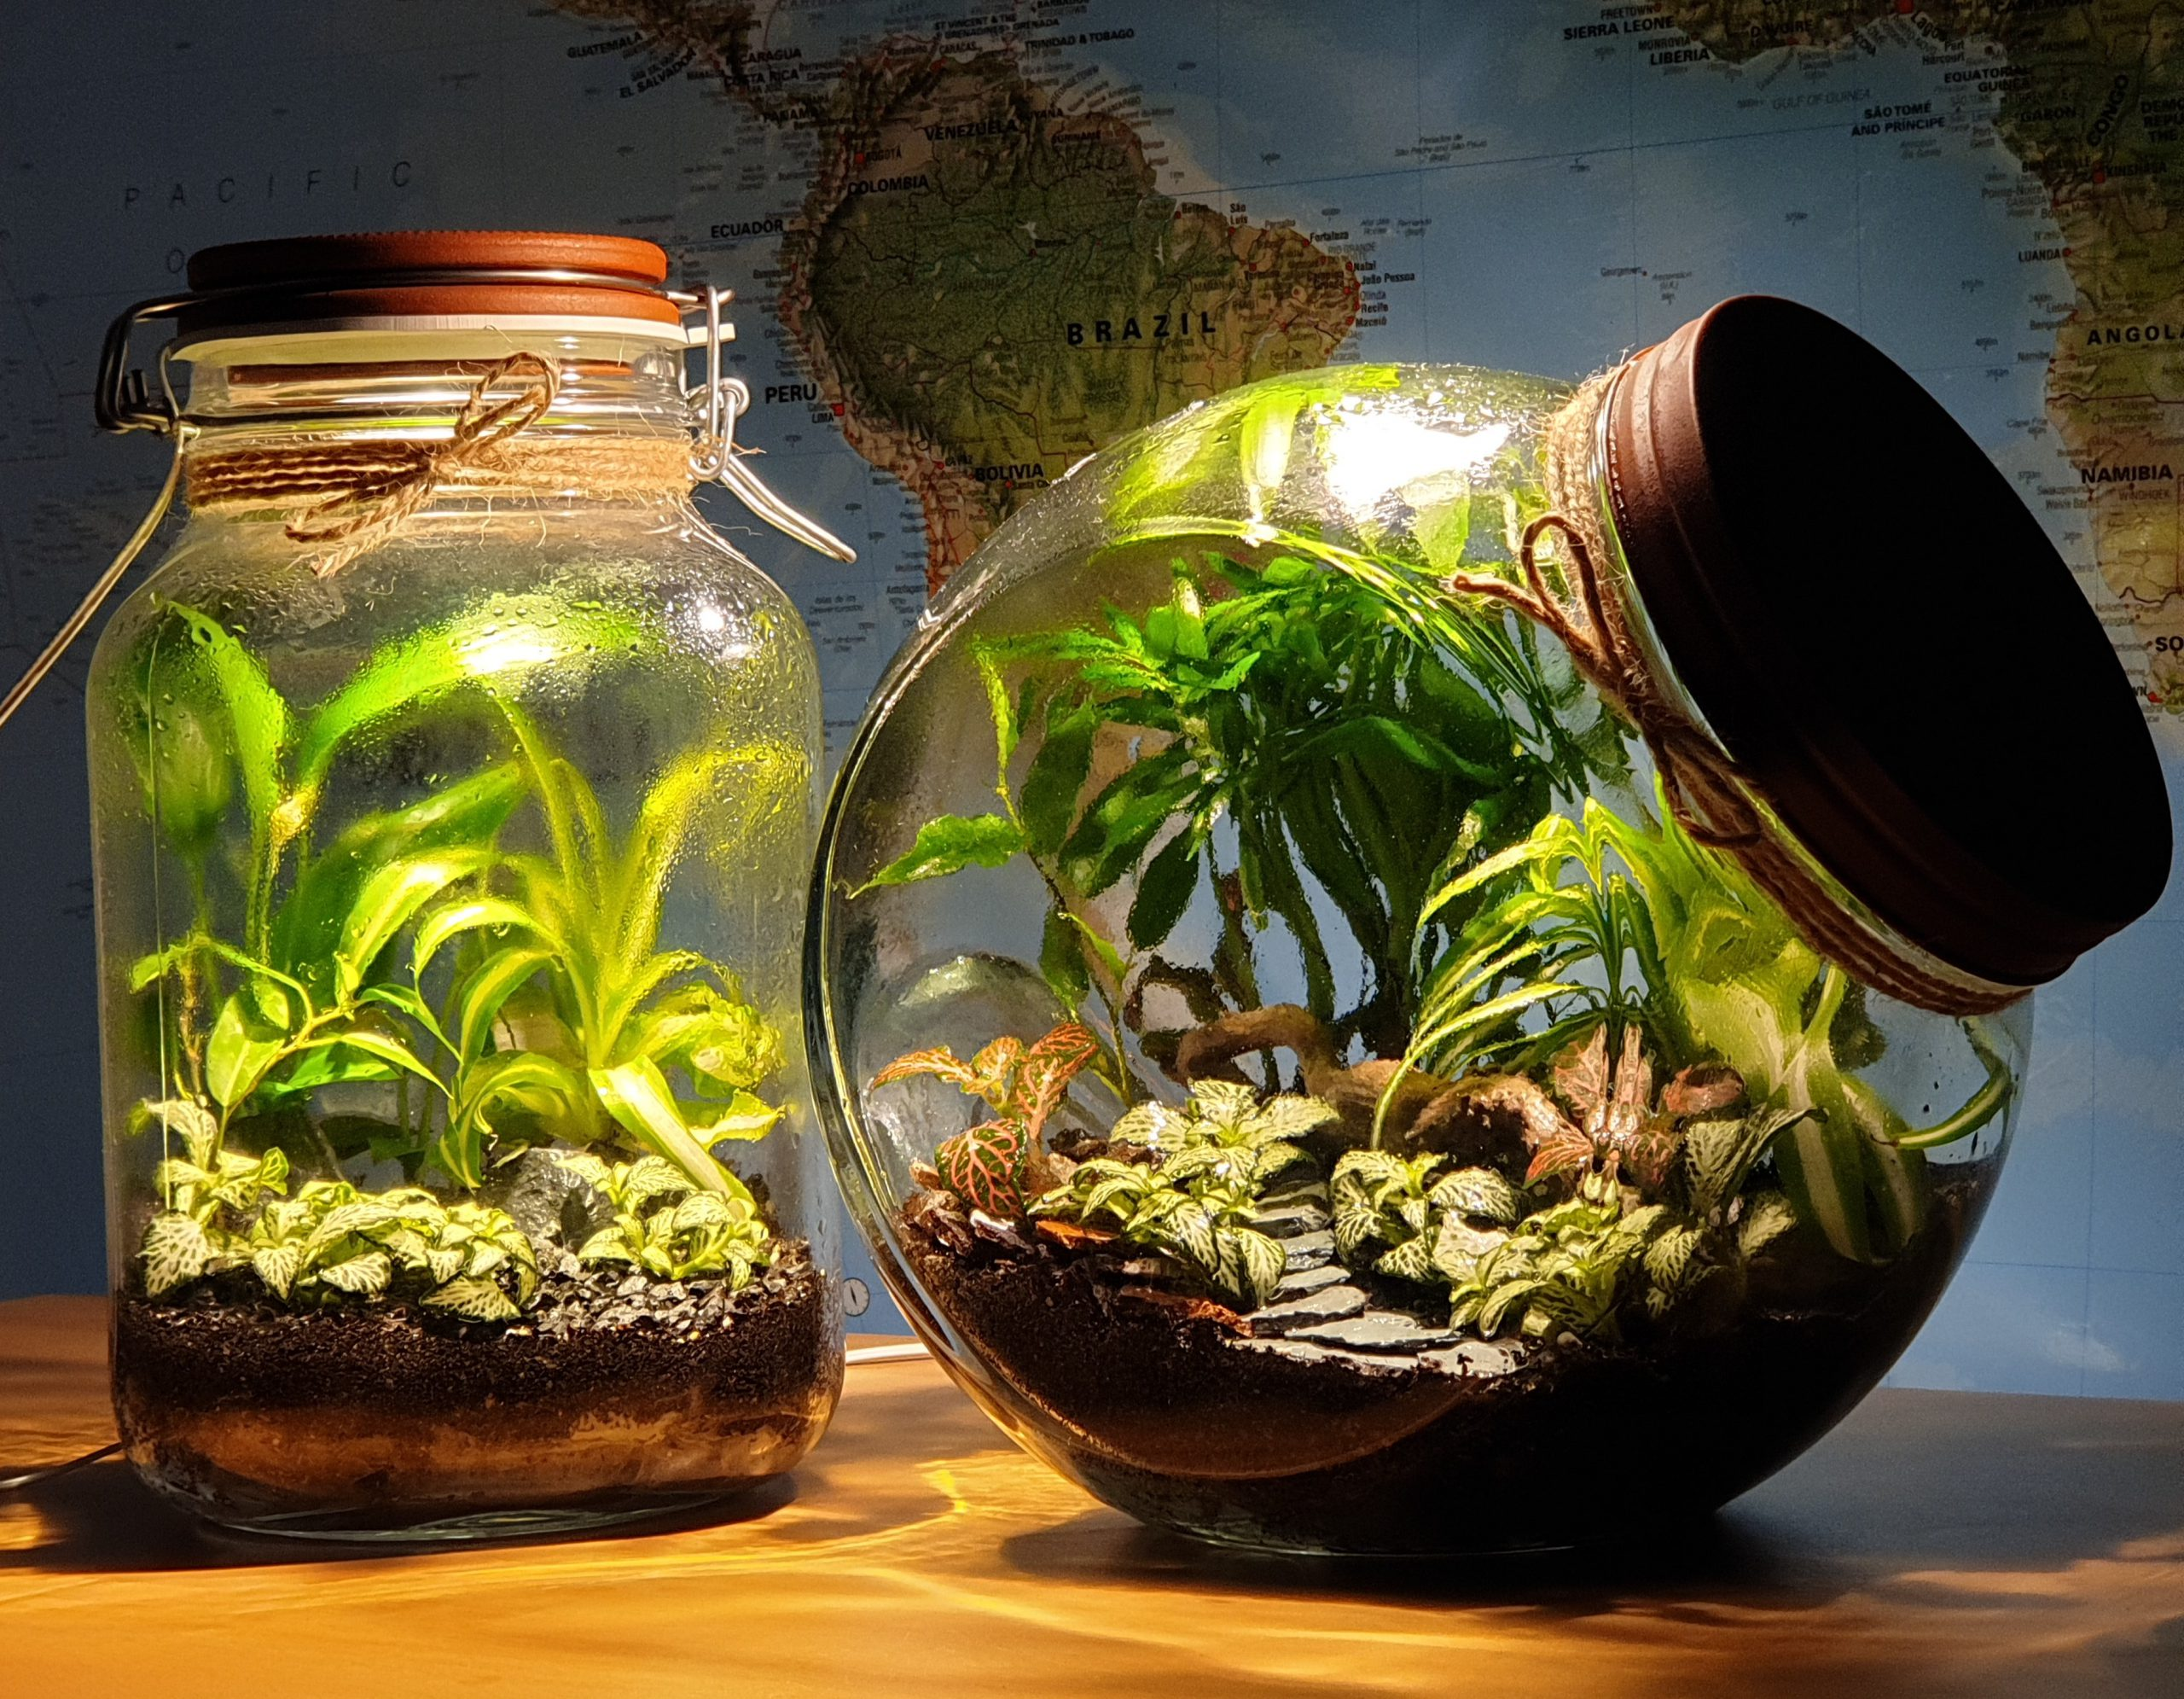 Examples of mini-biospheres (closed terrariums), one of which has integrated LED light